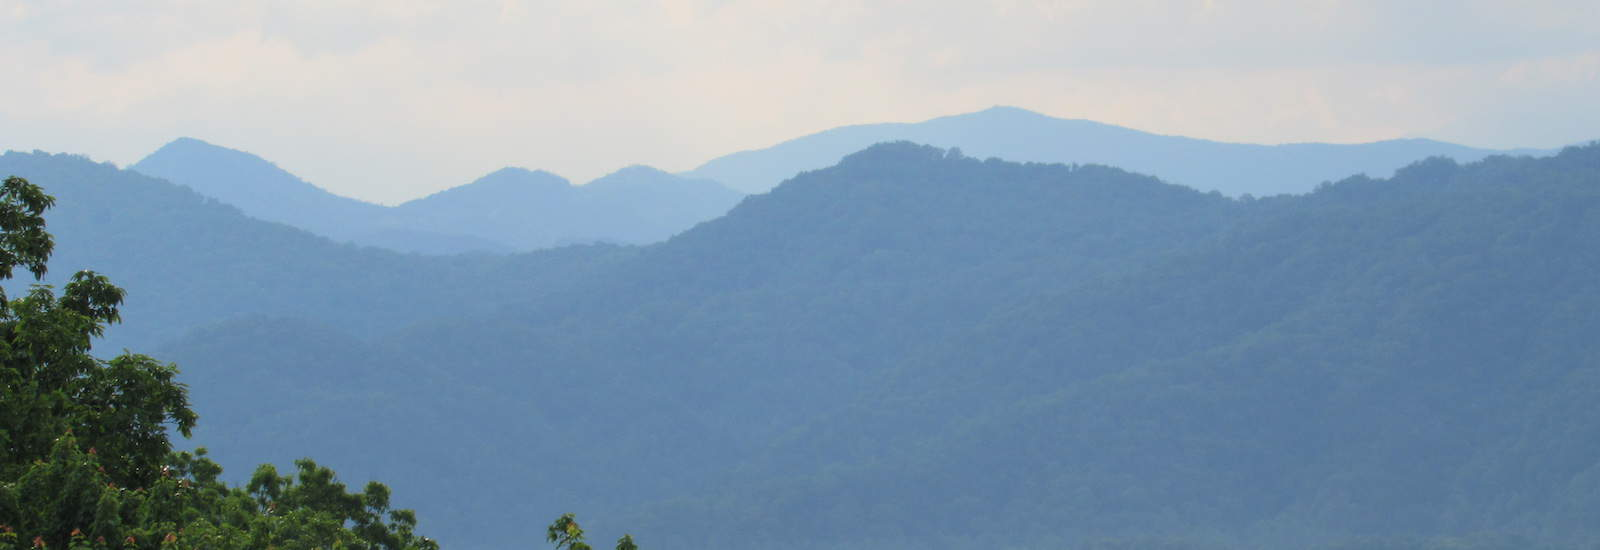 View of the Mountains from Asbury Place Kingsport